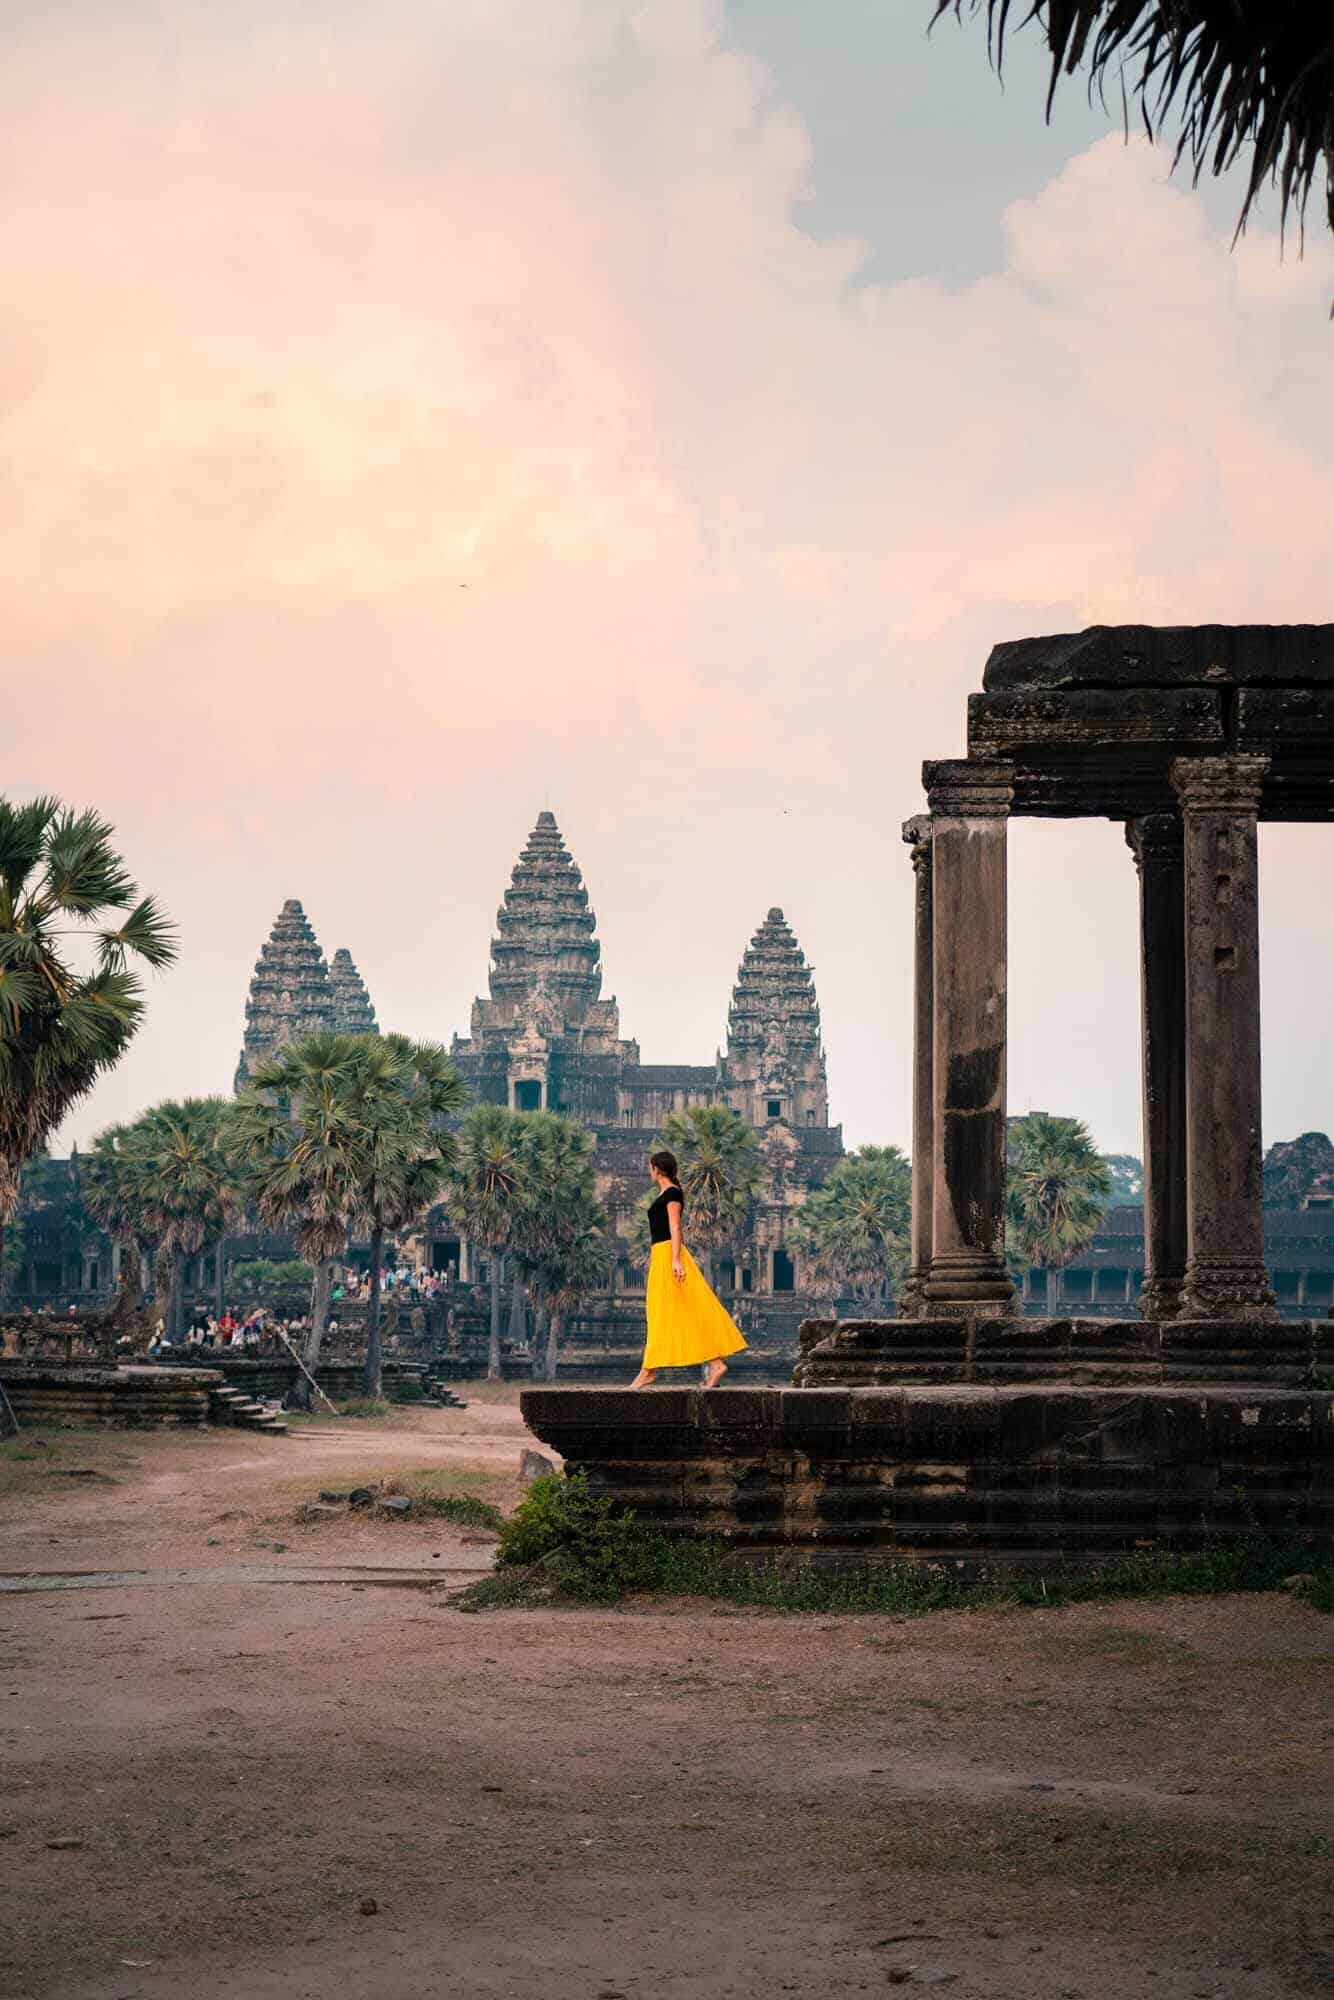 Angkor Wat Temple at sunset featuring @TravelsofSophie in a bright yellow dress